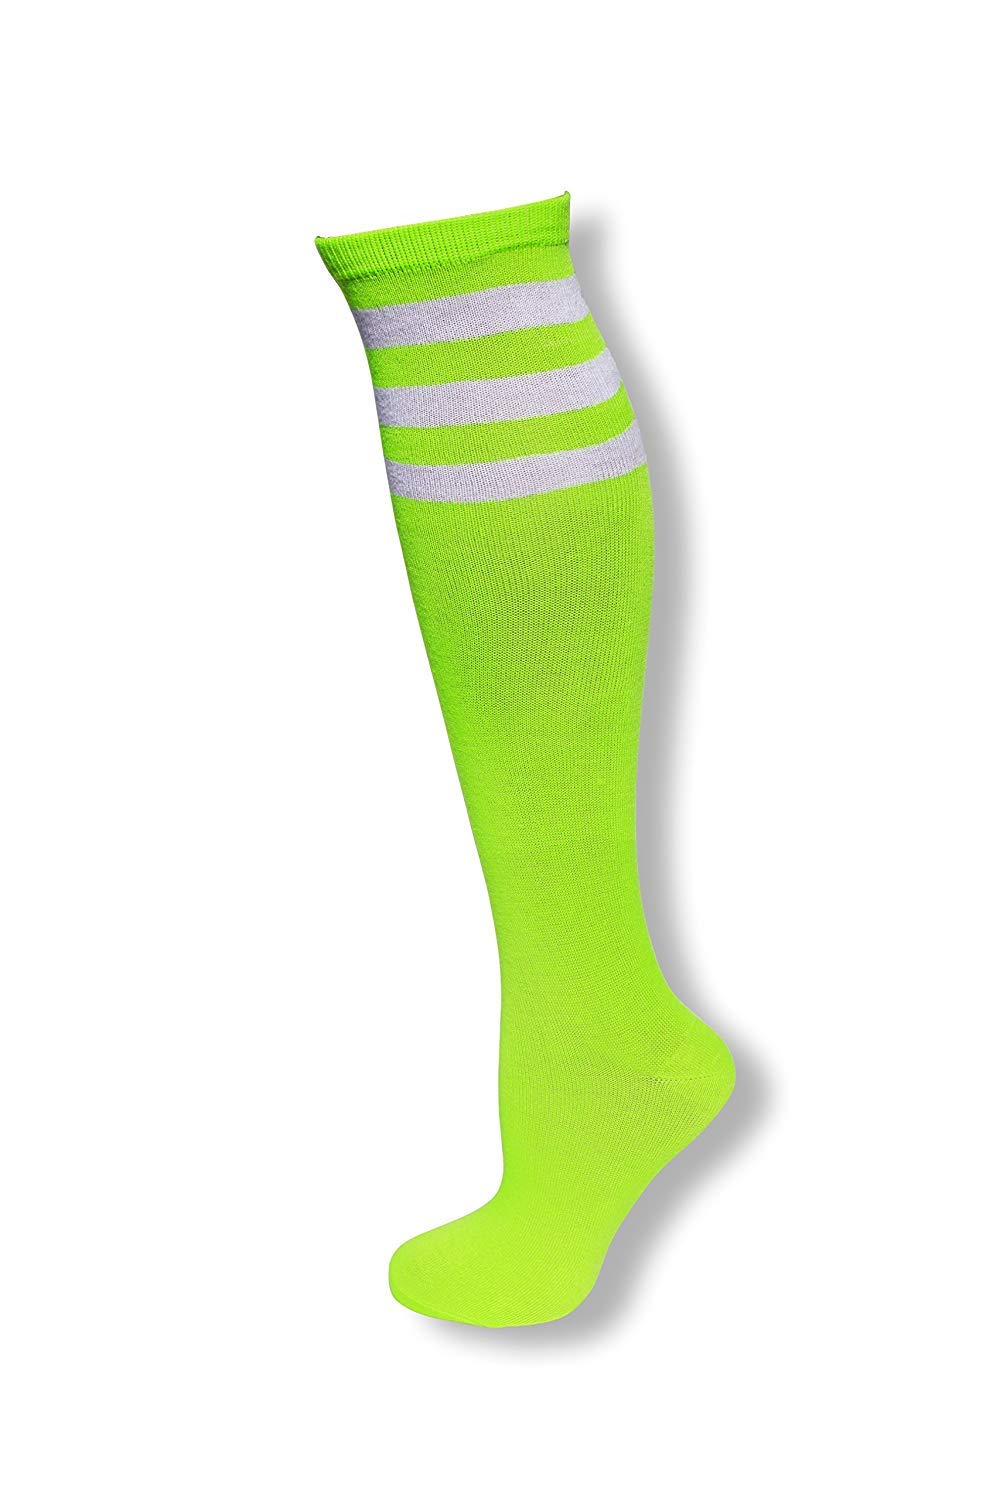 Neon Nation Colored Knee High Tube Socks w/ White Stripes